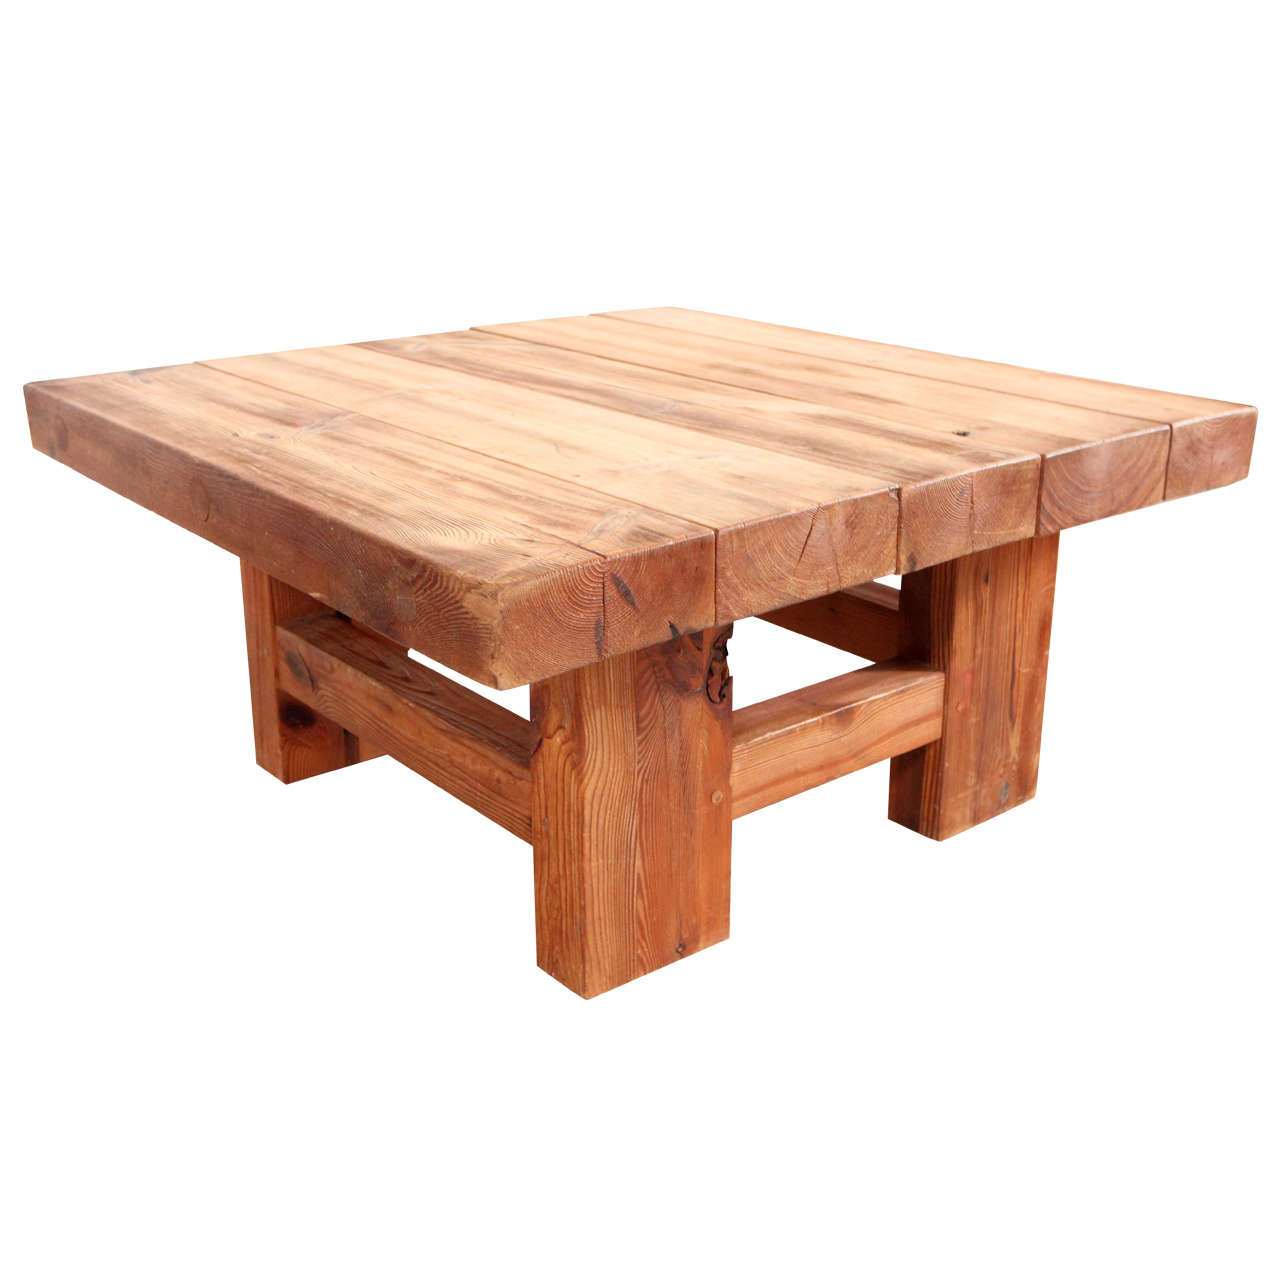 Rustic wood block square coffee table at 1stdibs Rustic wooden coffee tables